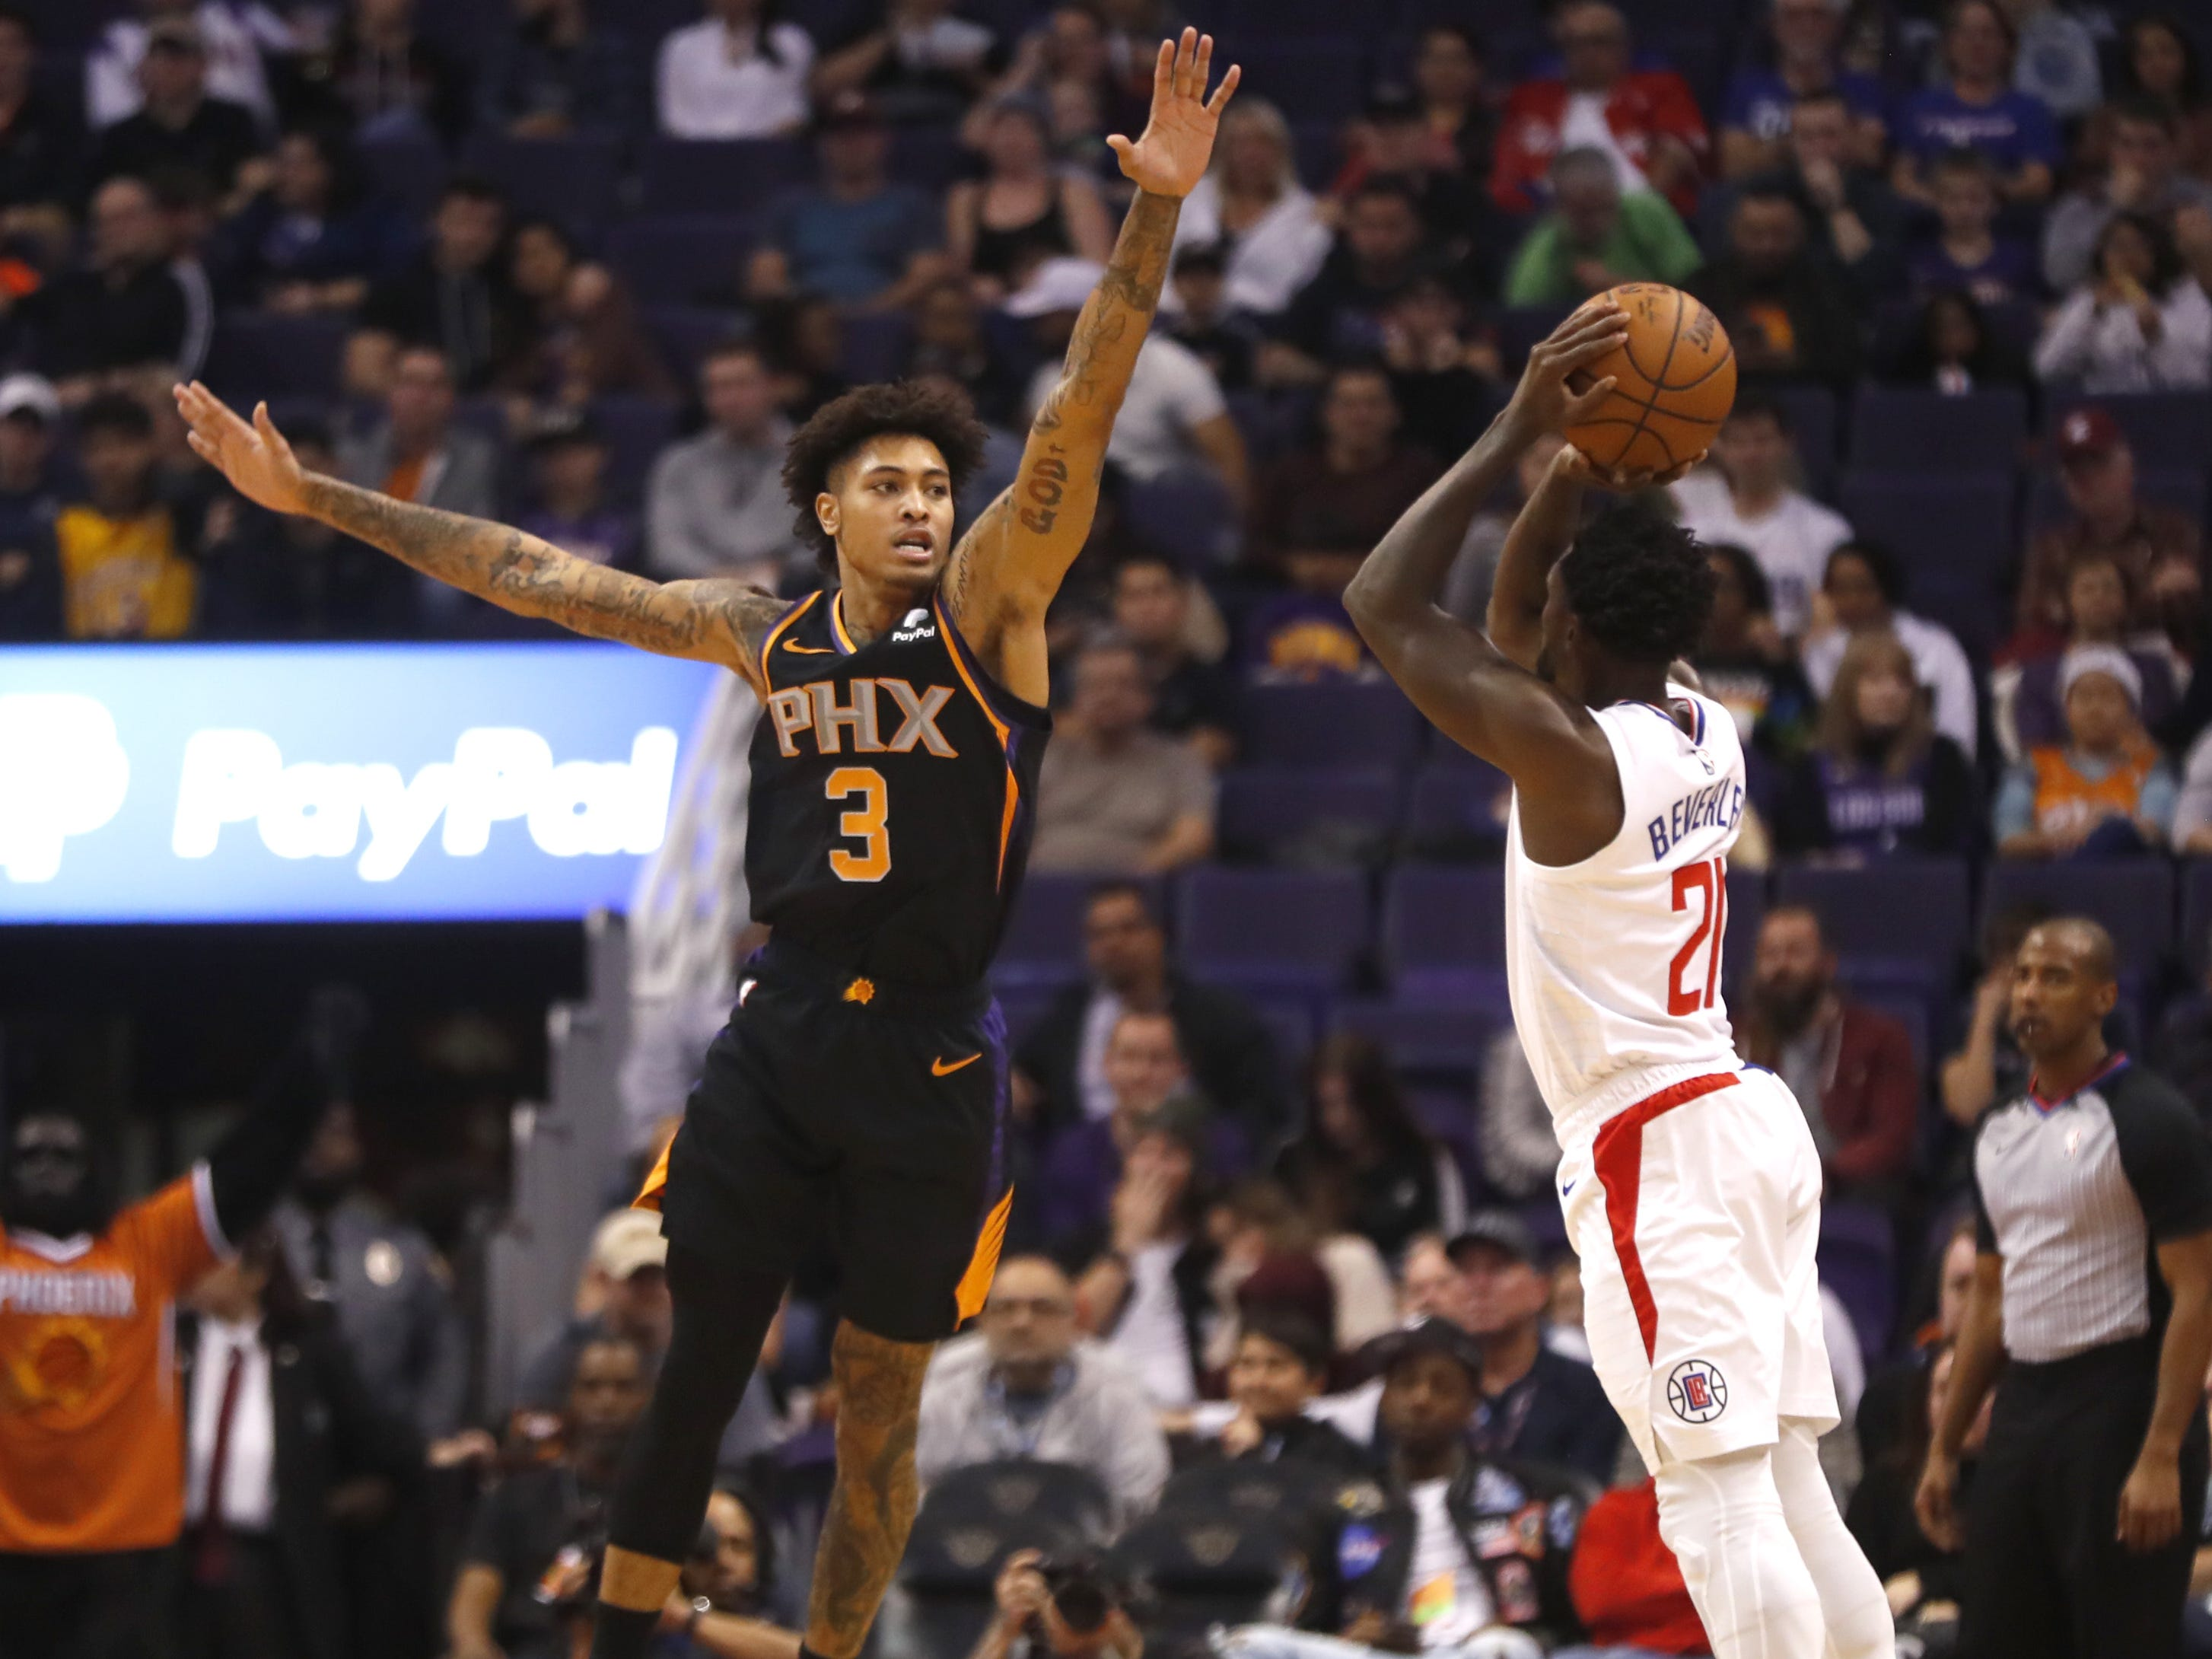 Suns' Kelly Oubre Jr. (3) contests a three pointer from Clippers' Patrick Beverley (21) during the first half at Talking Stick Resort Arena in Phoenix, Ariz. on January 4, 2019.